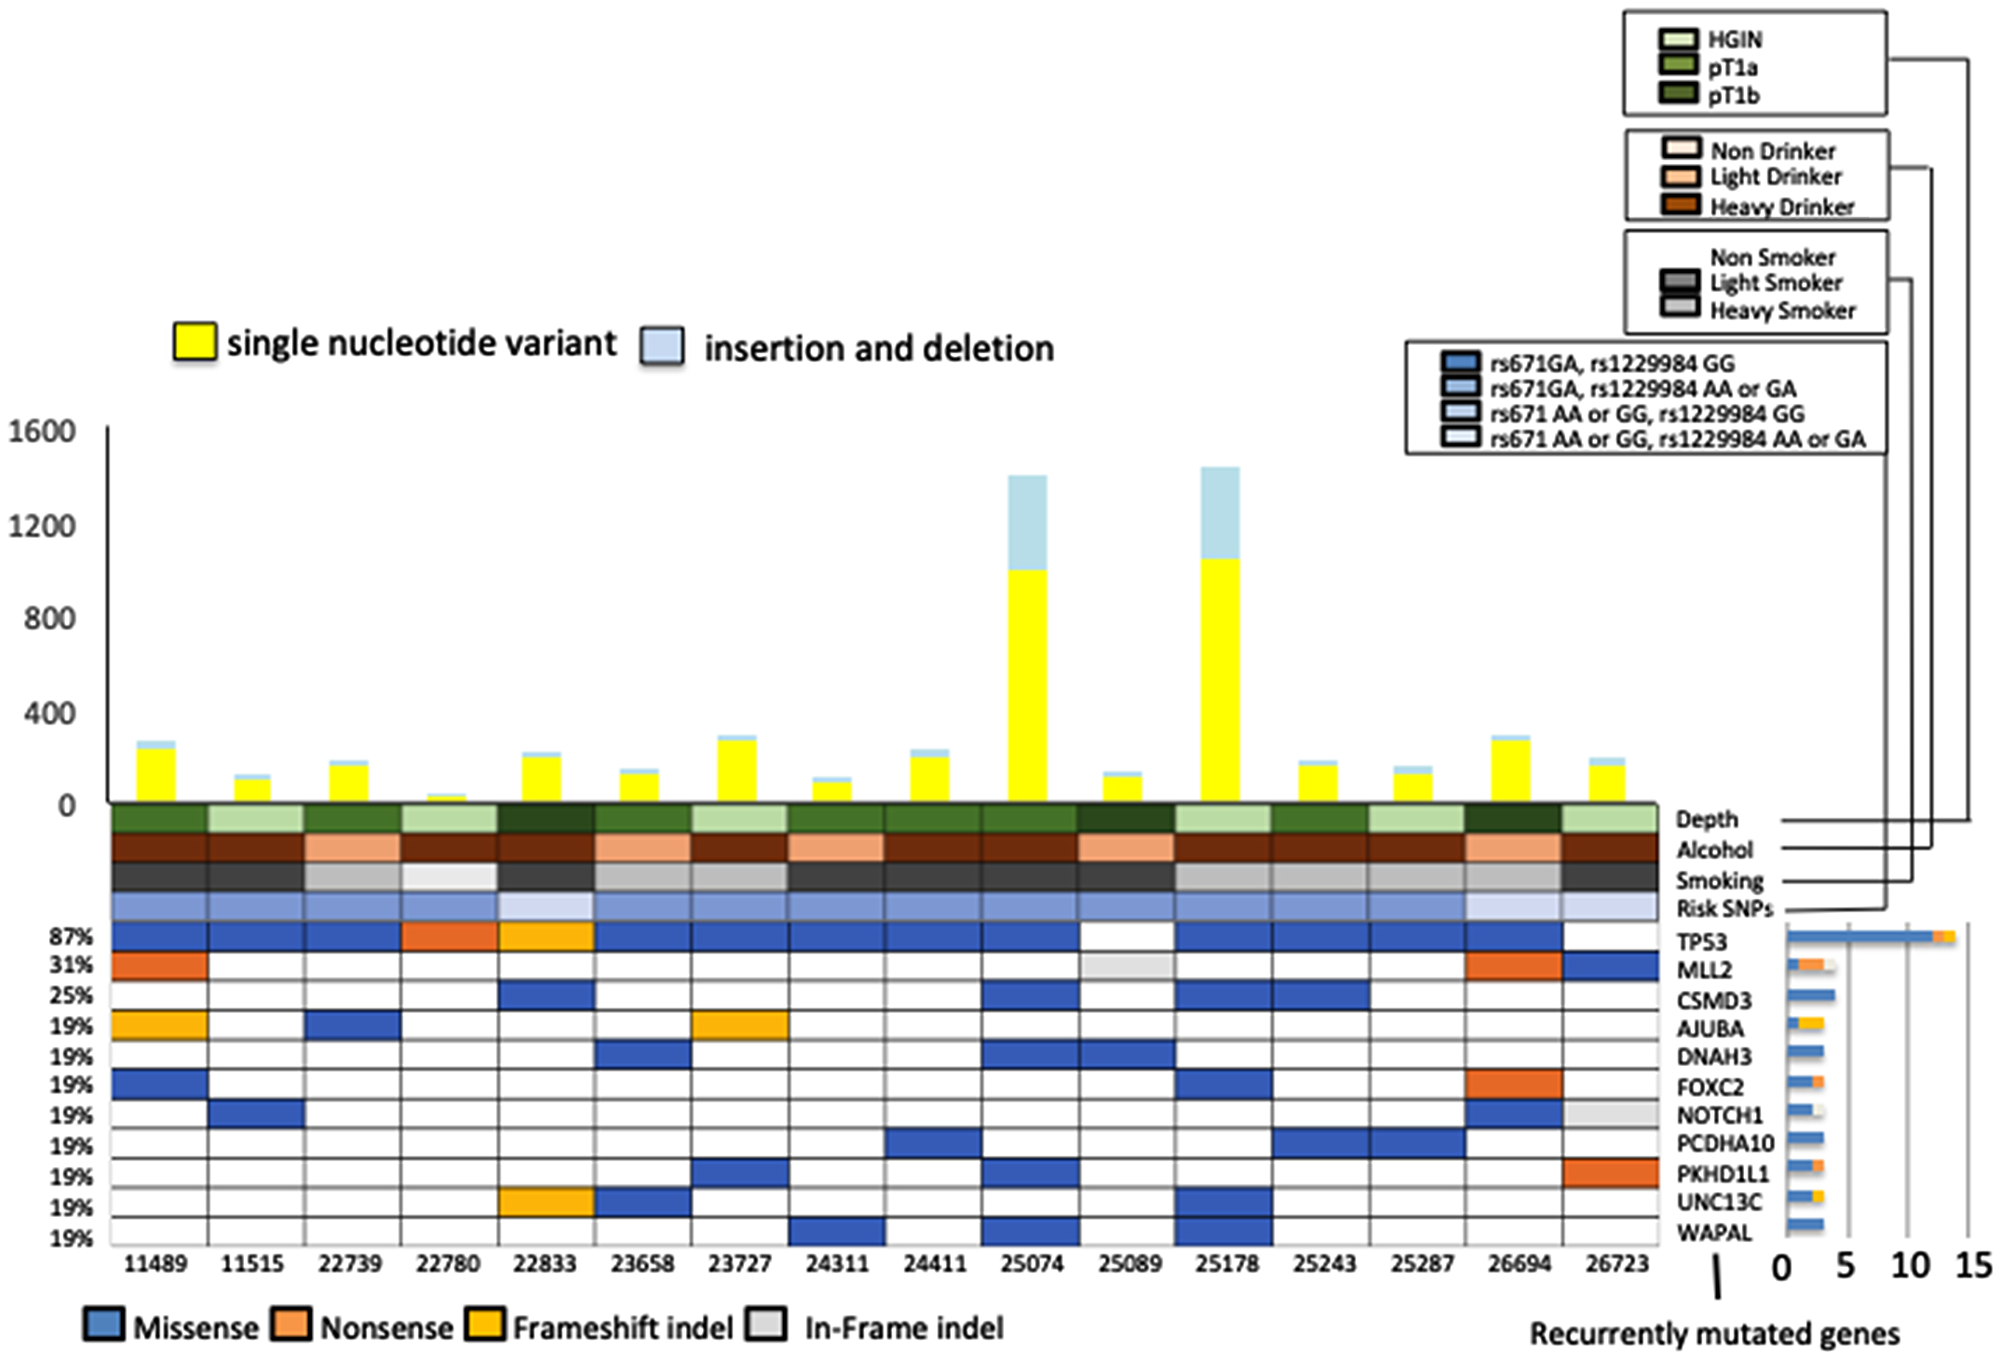 Representative exonic somatic mutations in 16 early-stage esophageal squamous cell carcinoma (ESCC) samples (High-grade intraepithelial neoplasm 6, T1a 7, T1b 3 samples).